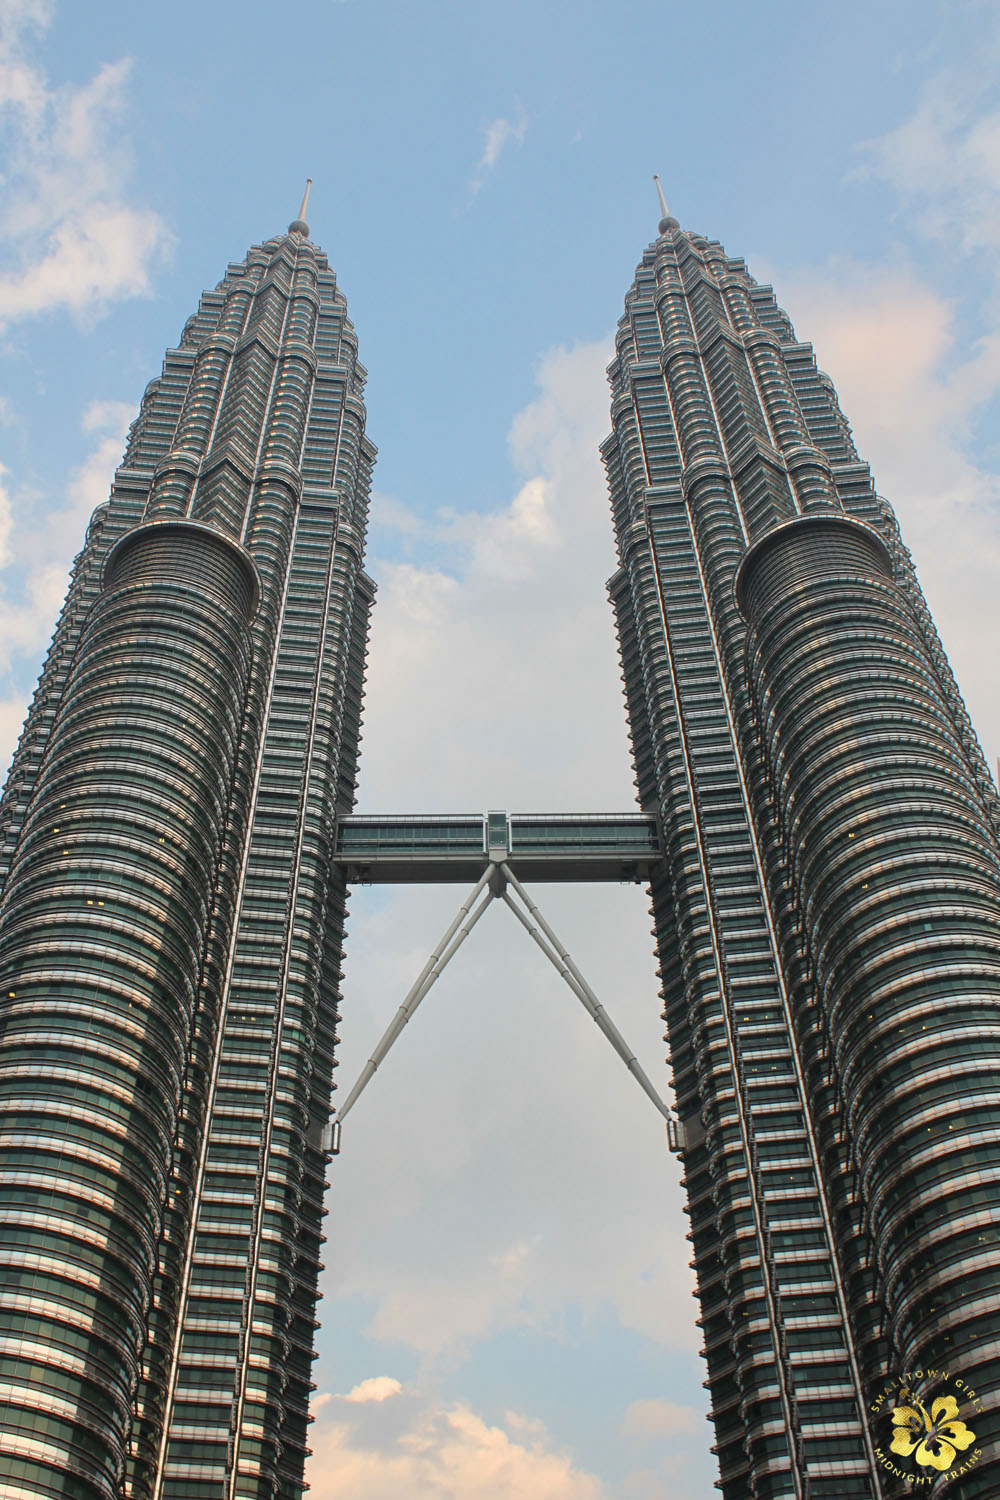 There S More To The Petronas Towers Than The Petronas Towers